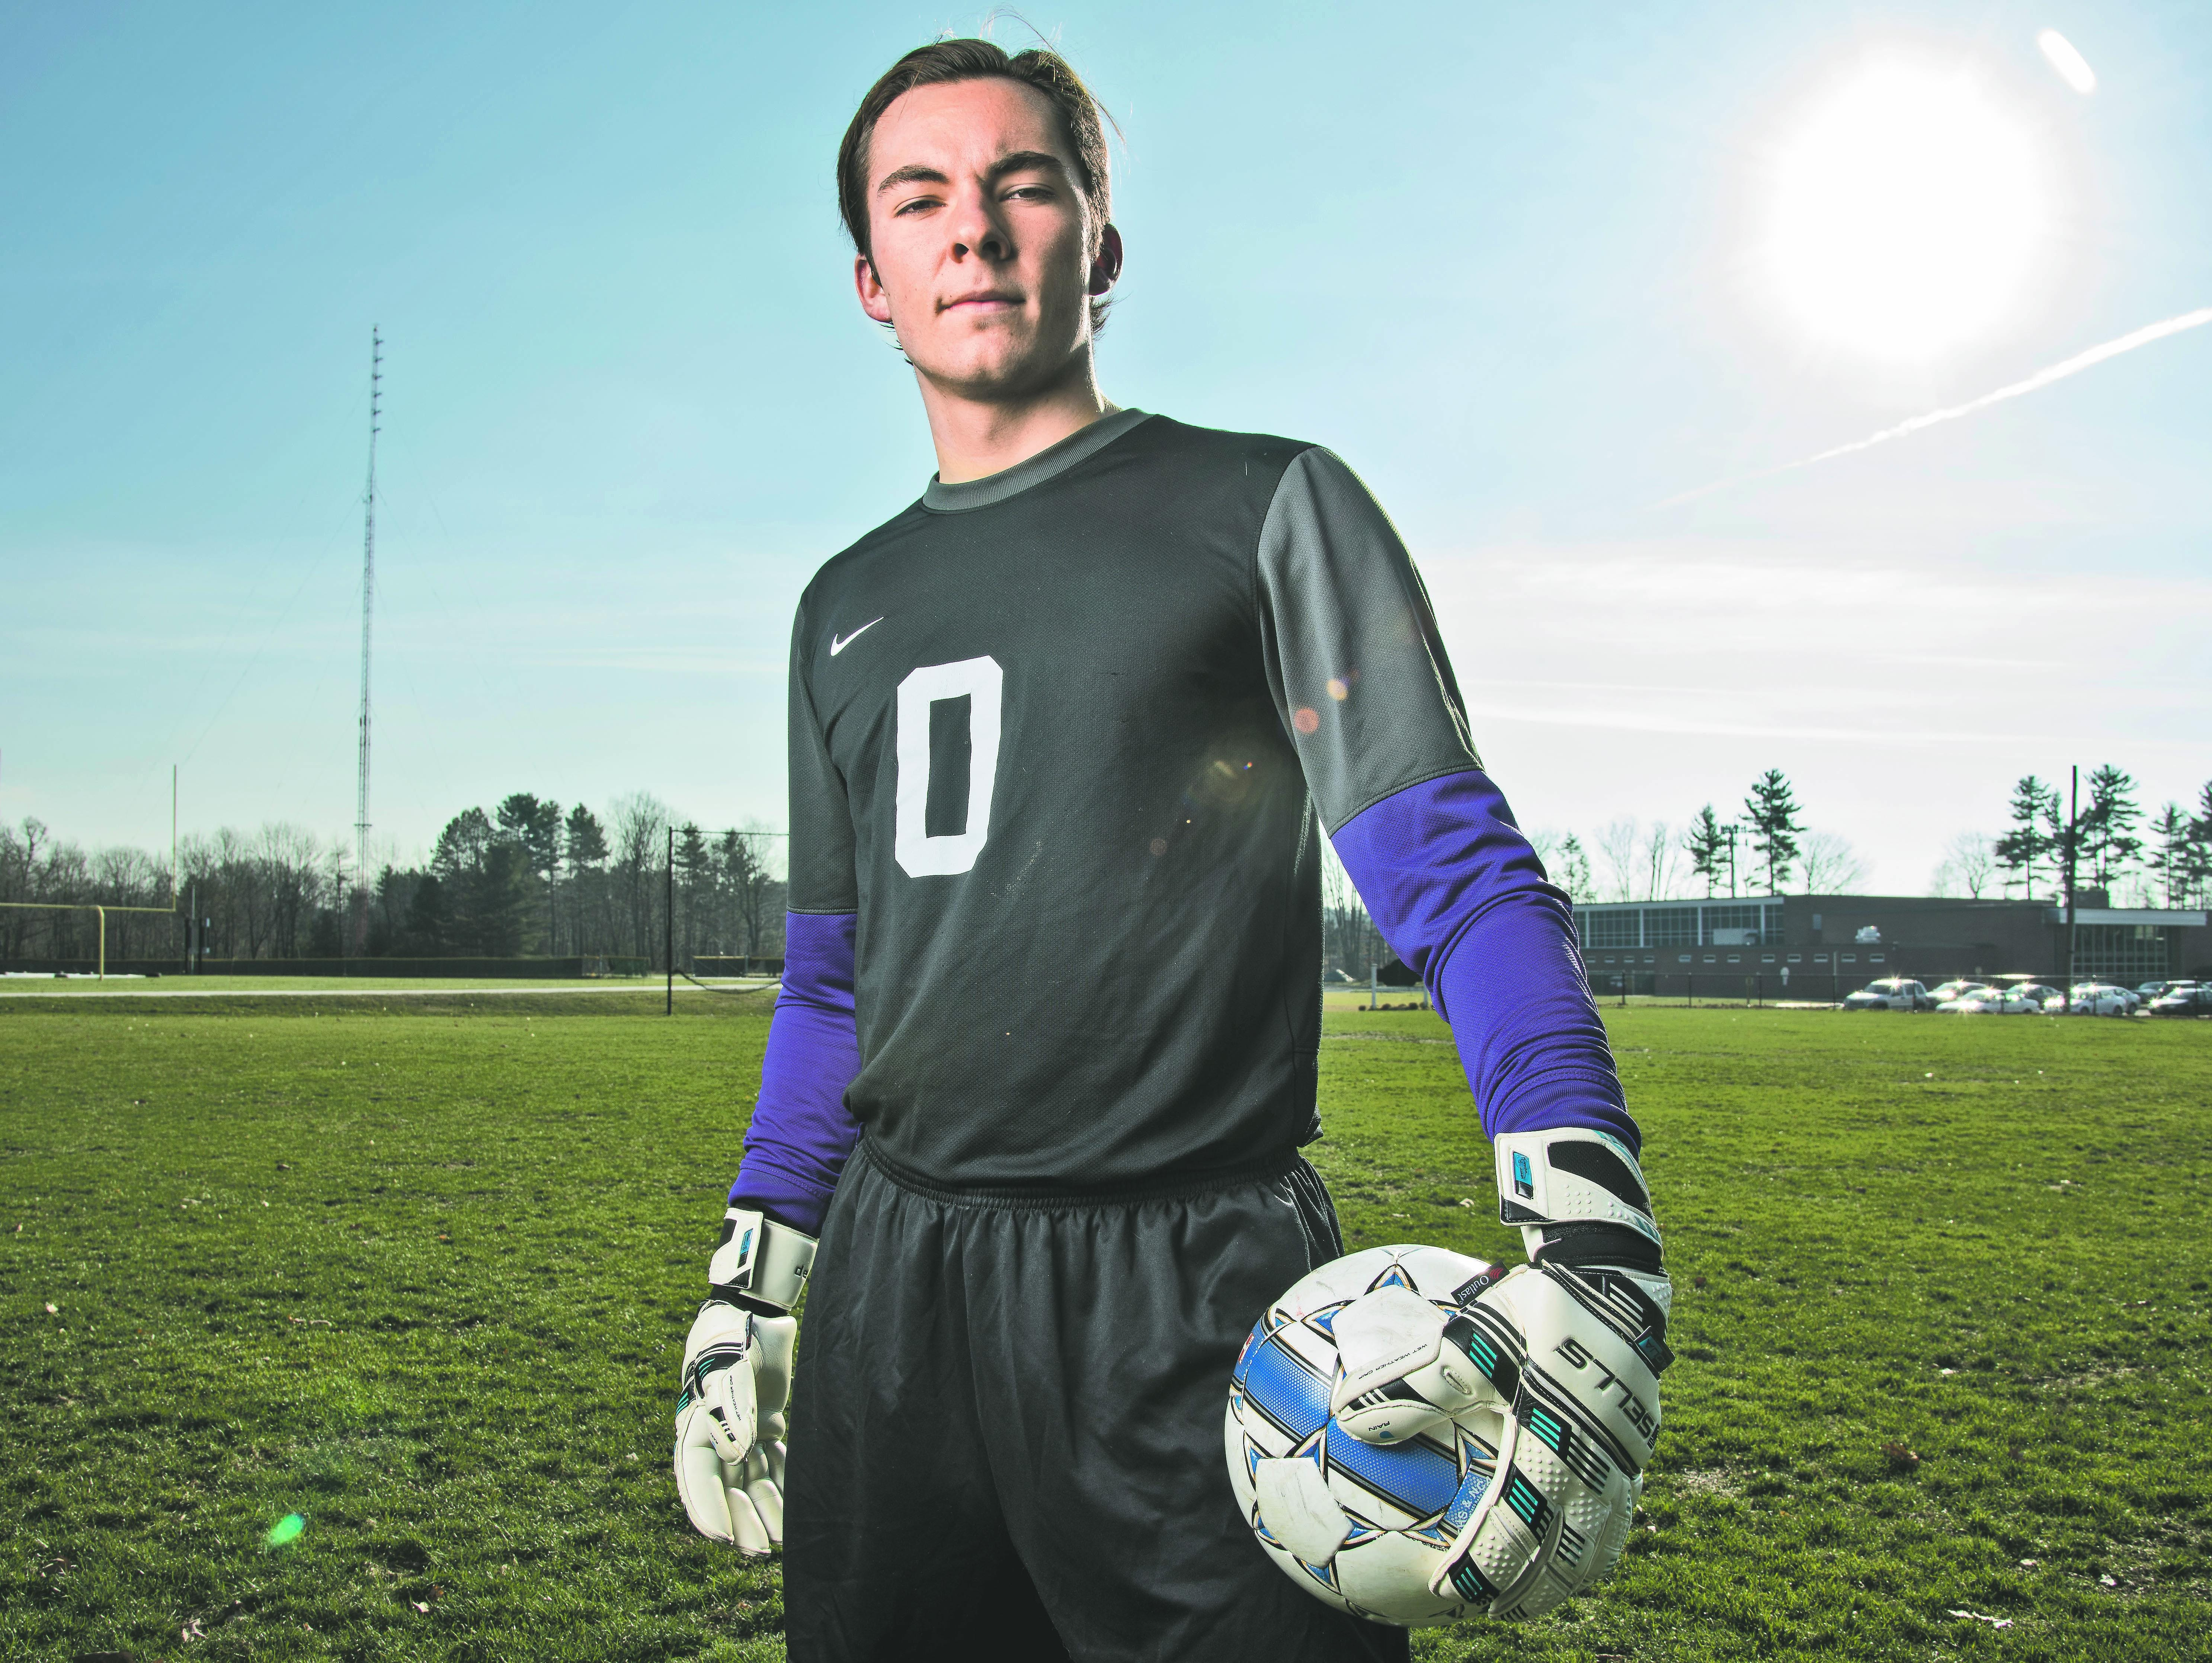 Rice goalie Leland Gazo poses for a portrait at Rice Memorial High School last week. Gazo was named the Burlington Free Press boys soccer player of the year for 2015.